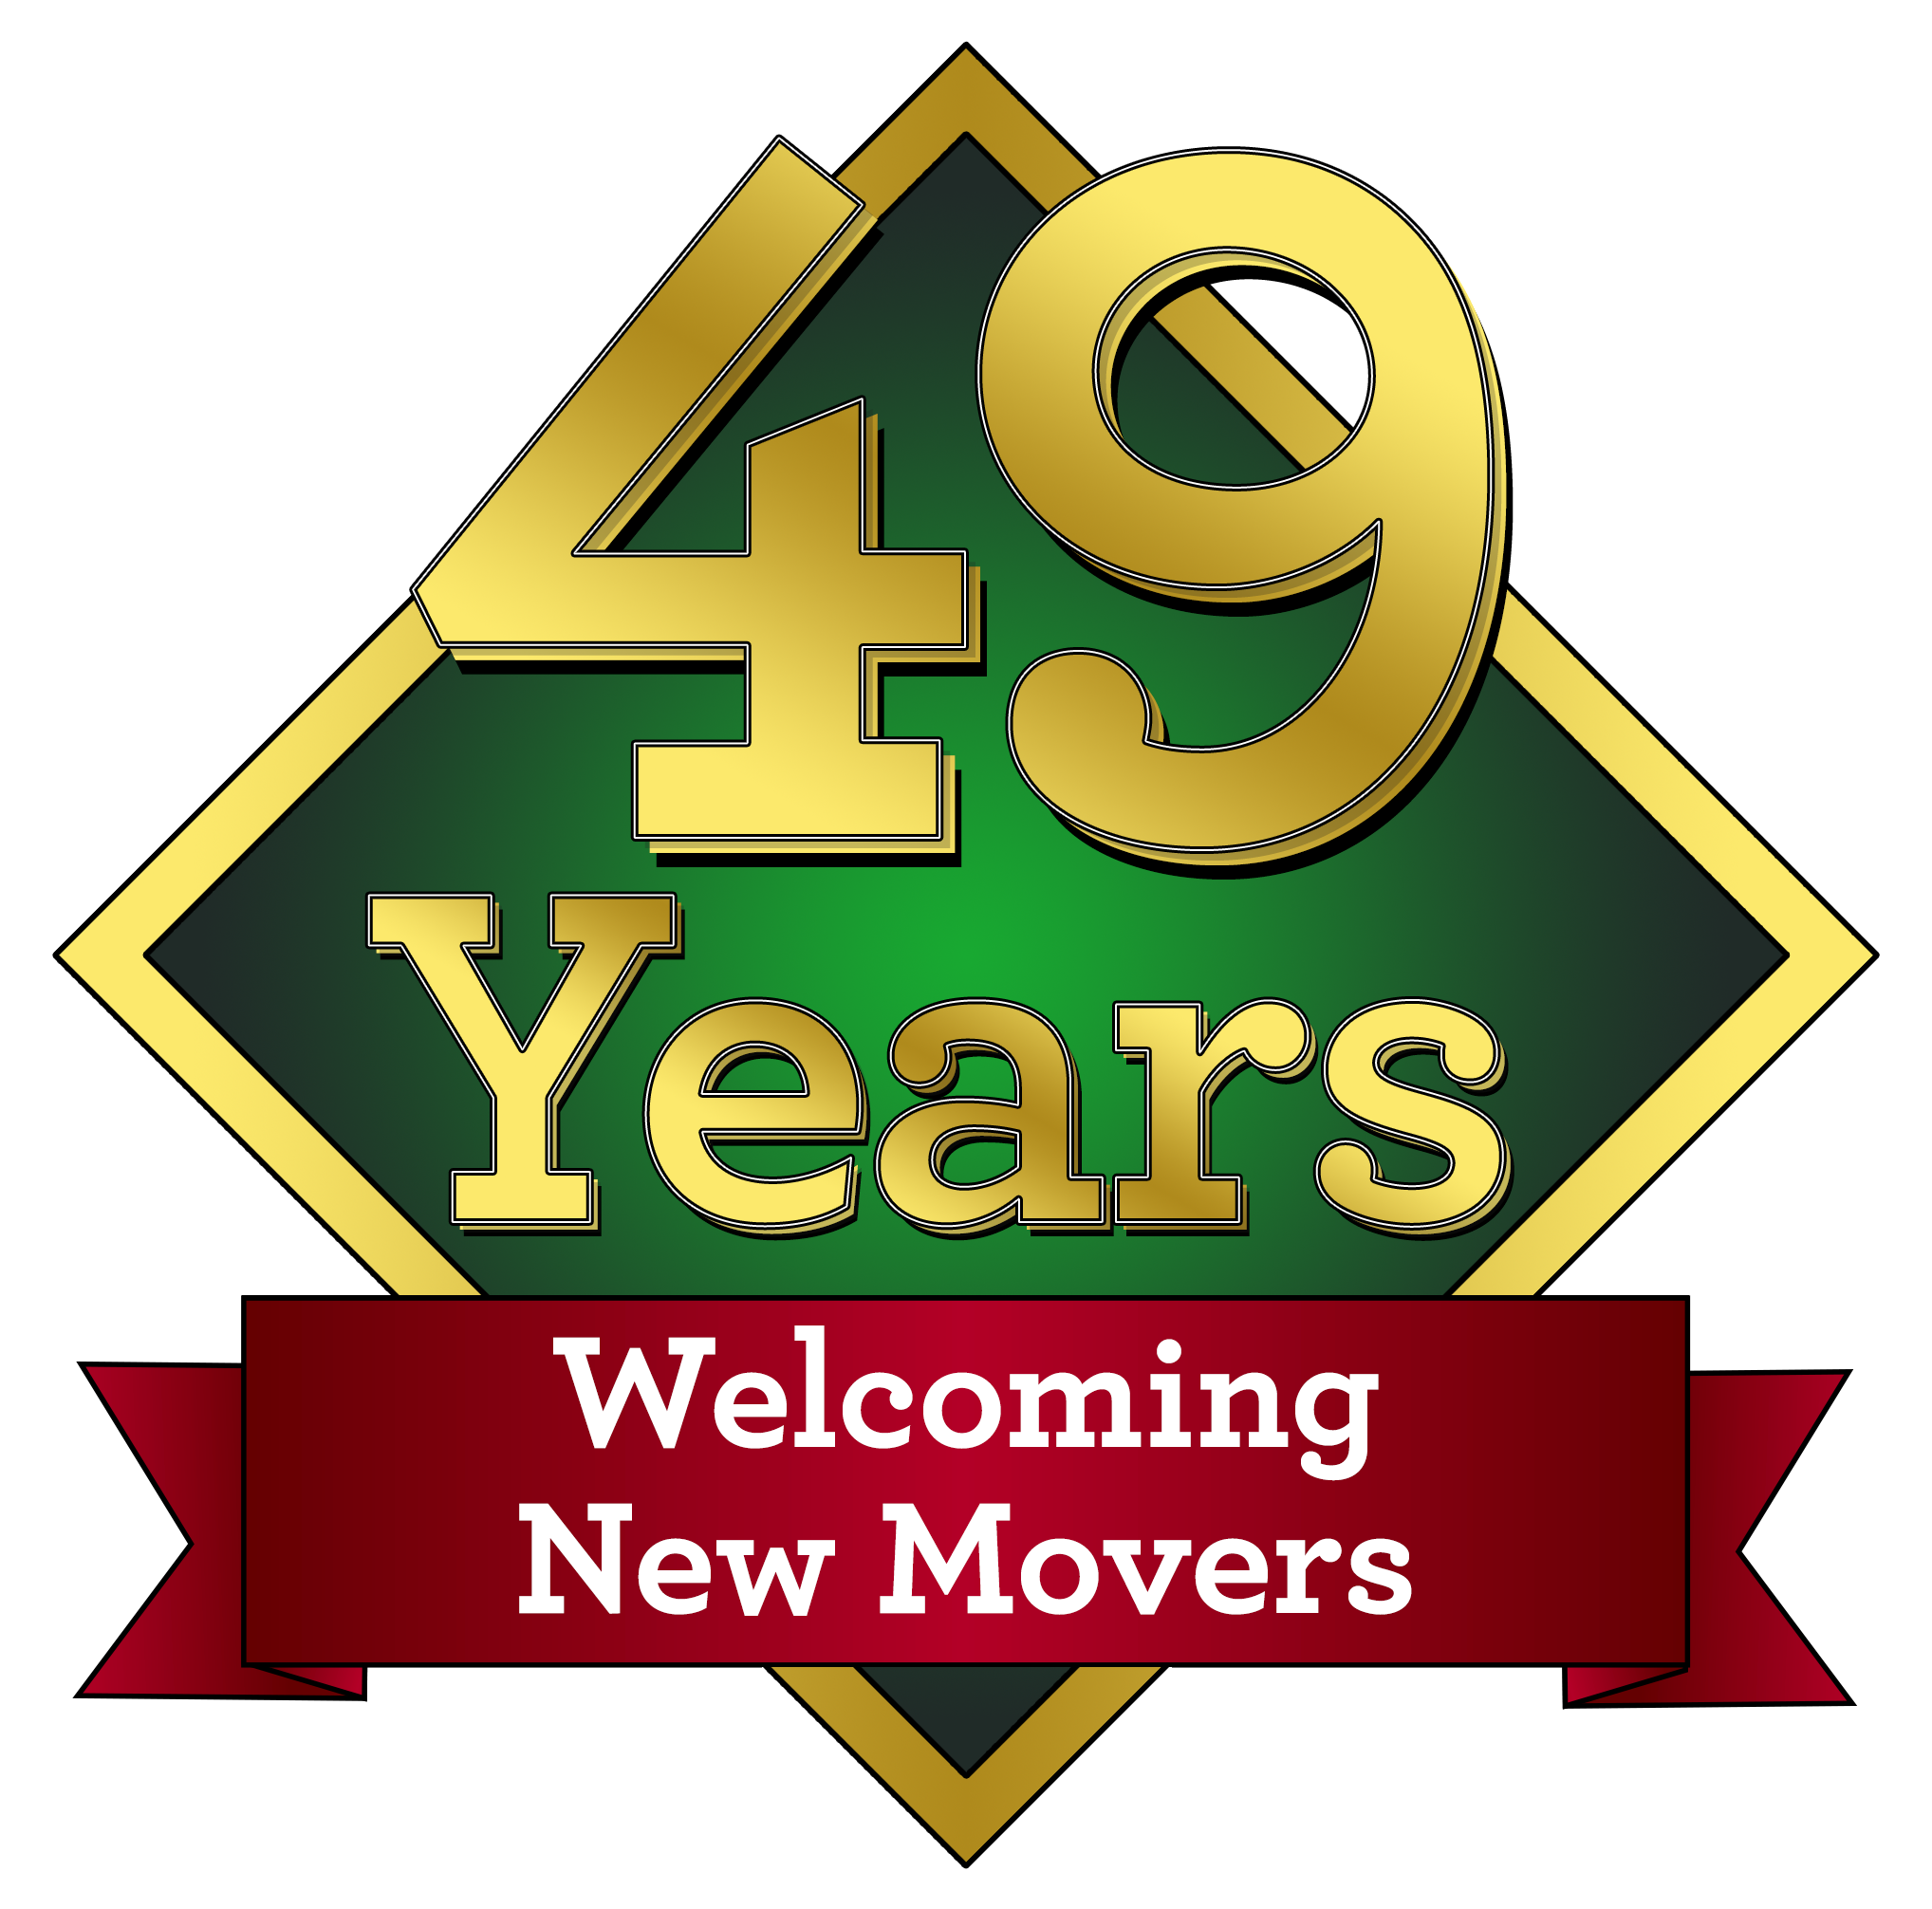 Data-driven Marketing Company, Our Town America, Celebrates 49th Year in Business